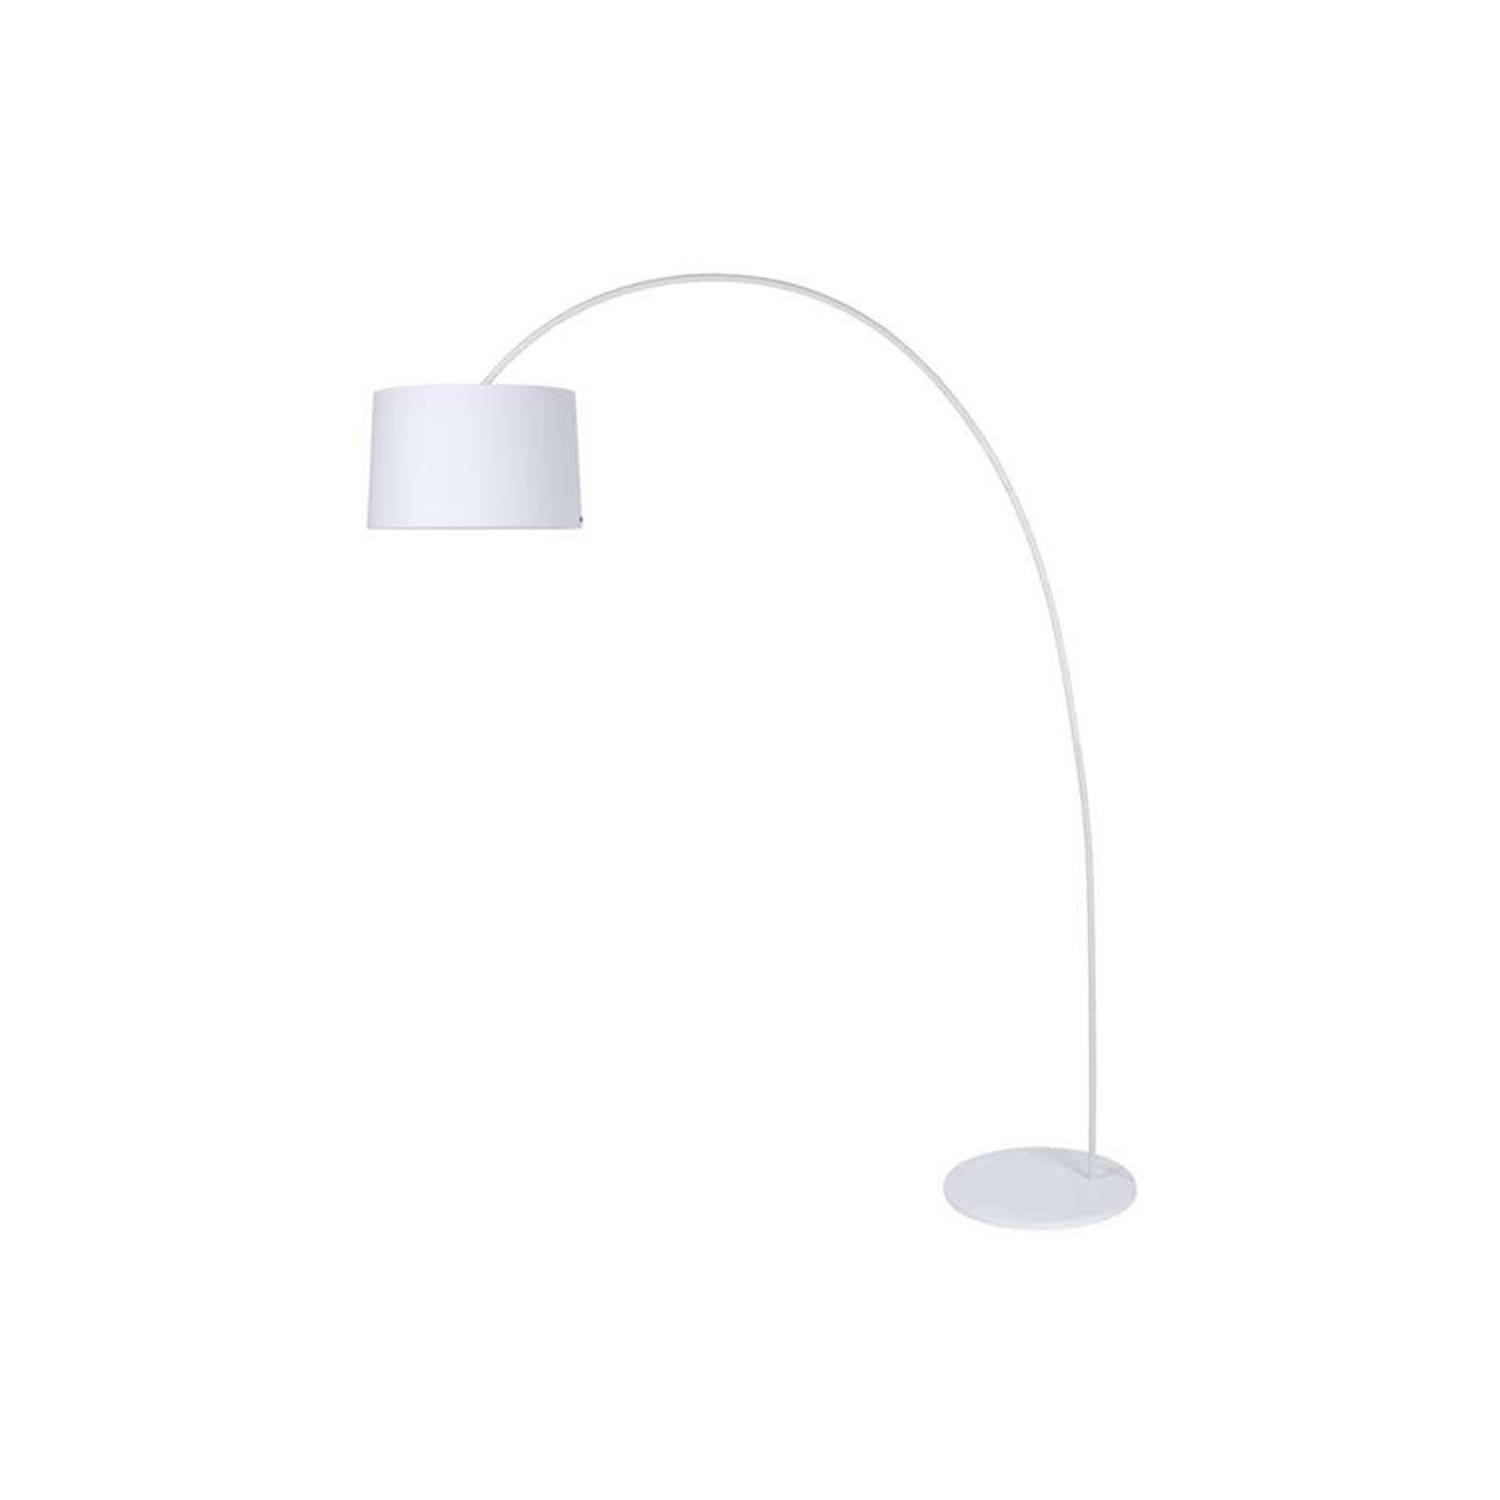 Lucide vloerlamp Paxi - wit